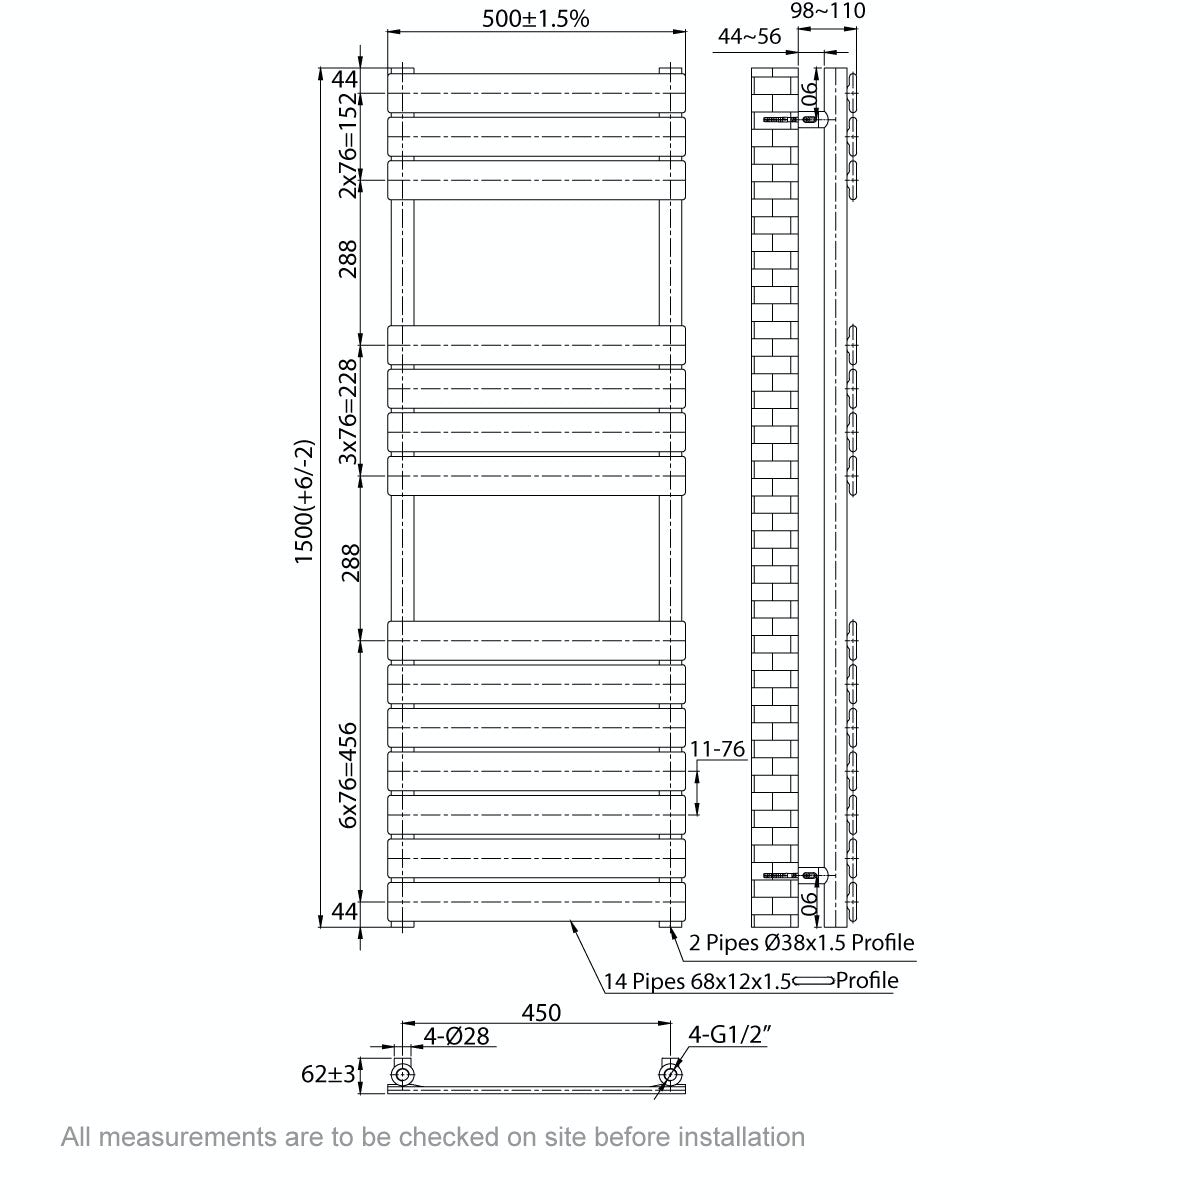 Dimensions for Orchard Signelle anthracite heated towel rail 1500 x 500